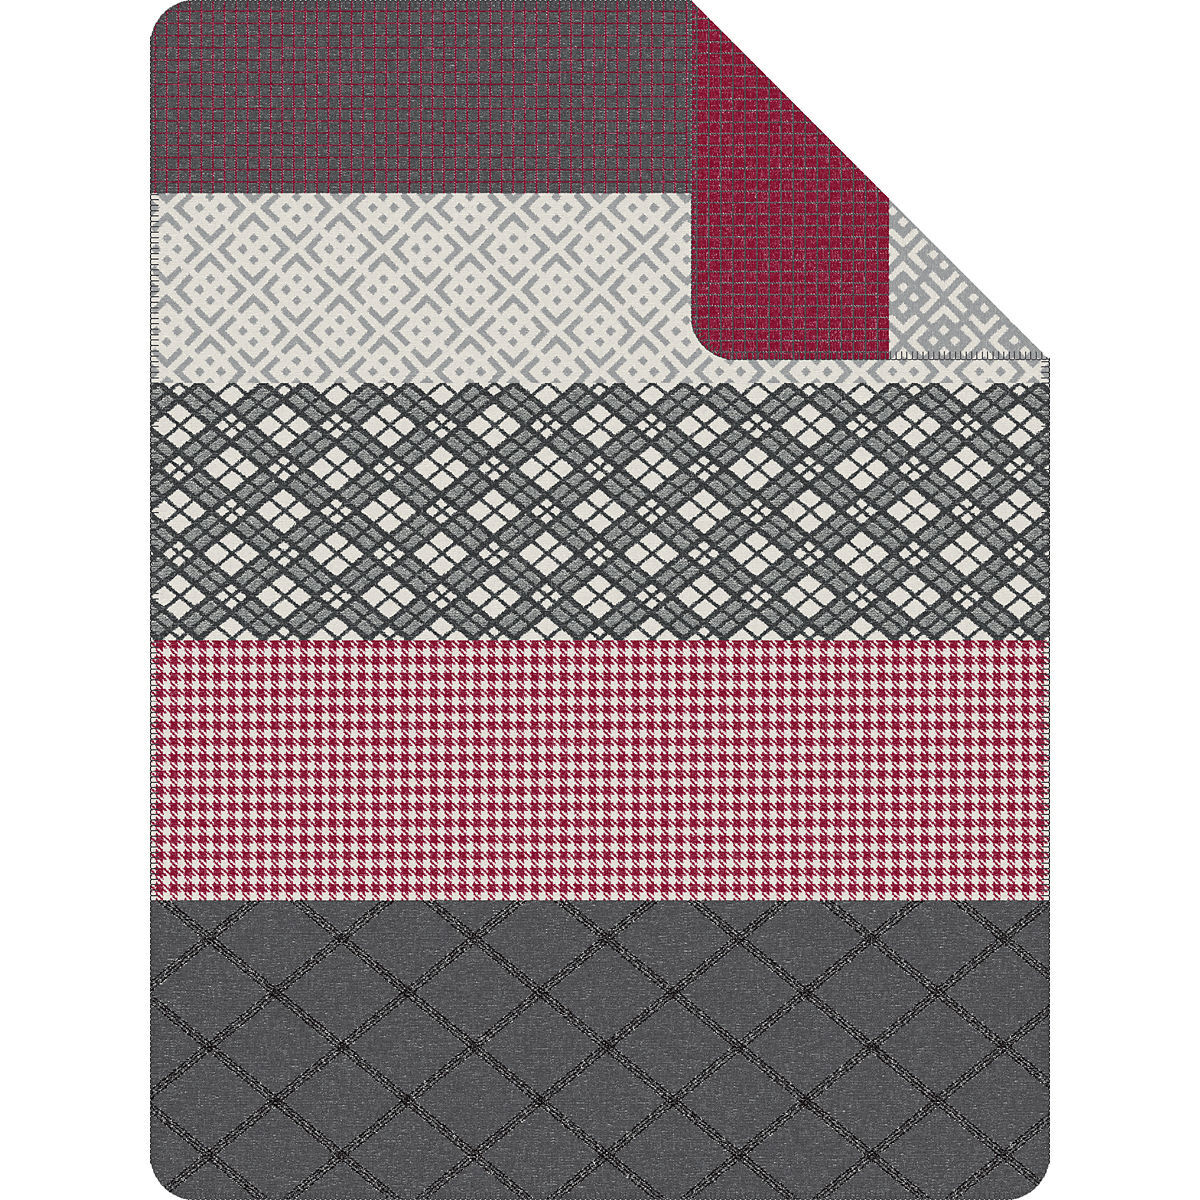 soliver jacquard decke muster mix 150x200 cm rotgrau - Decke Muster